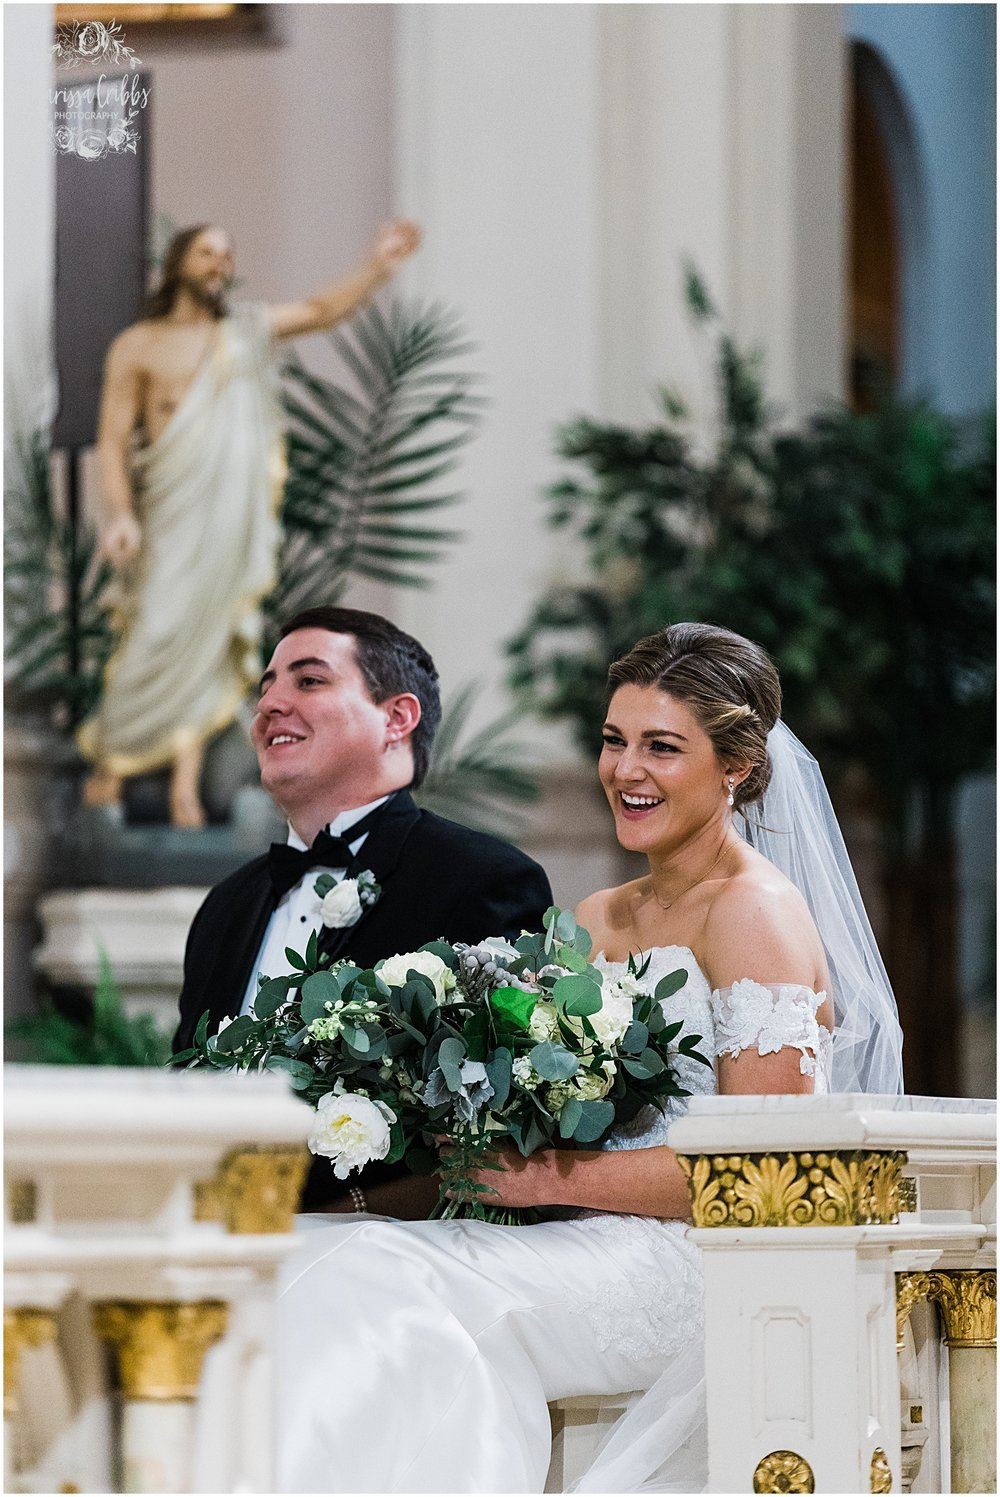 JOE & CAROLINE MARRIED | INDIAN HILLS COUNTRY CLUB | MARISSA CRIBBS PHOTOGRAPHY_7259.jpg